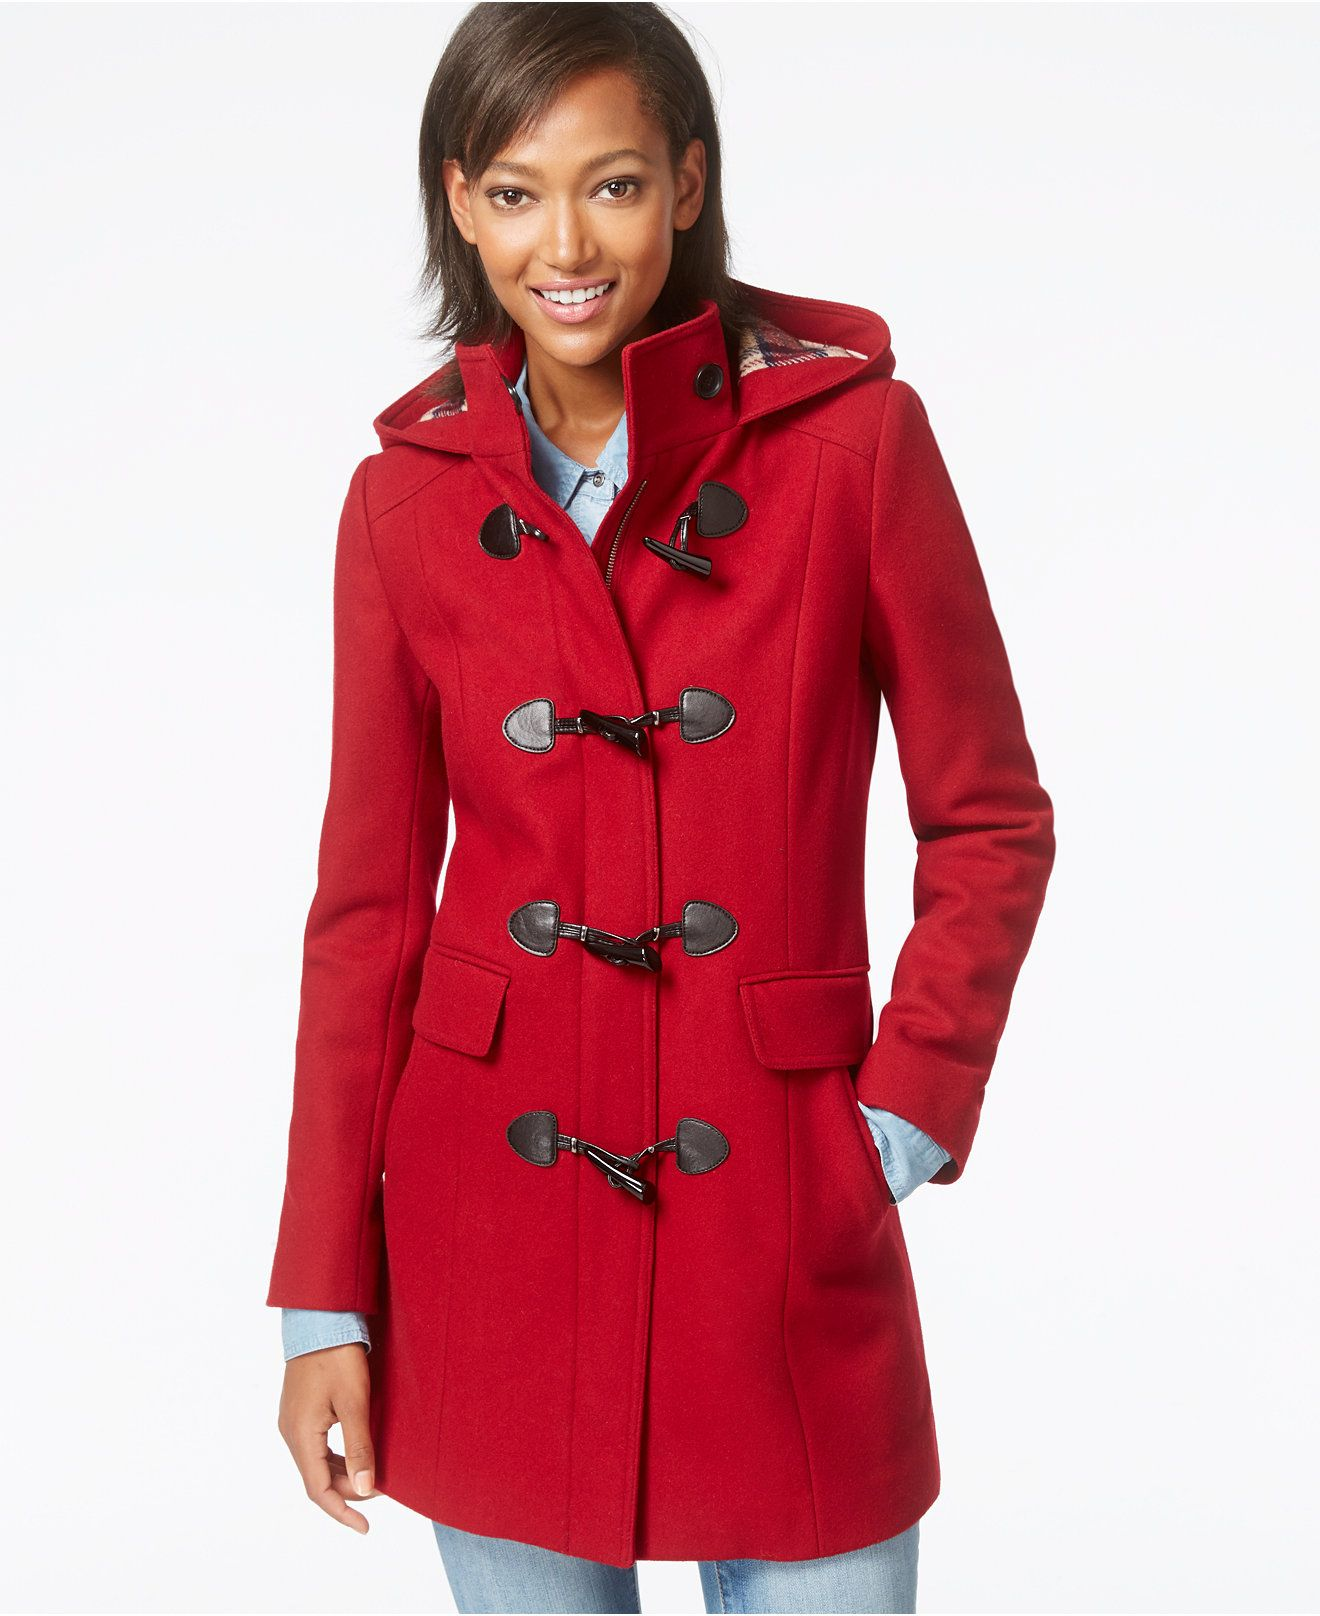 Tommy Hilfiger Plaid-Trim Wool Duffle Coat - Coats - Women ...